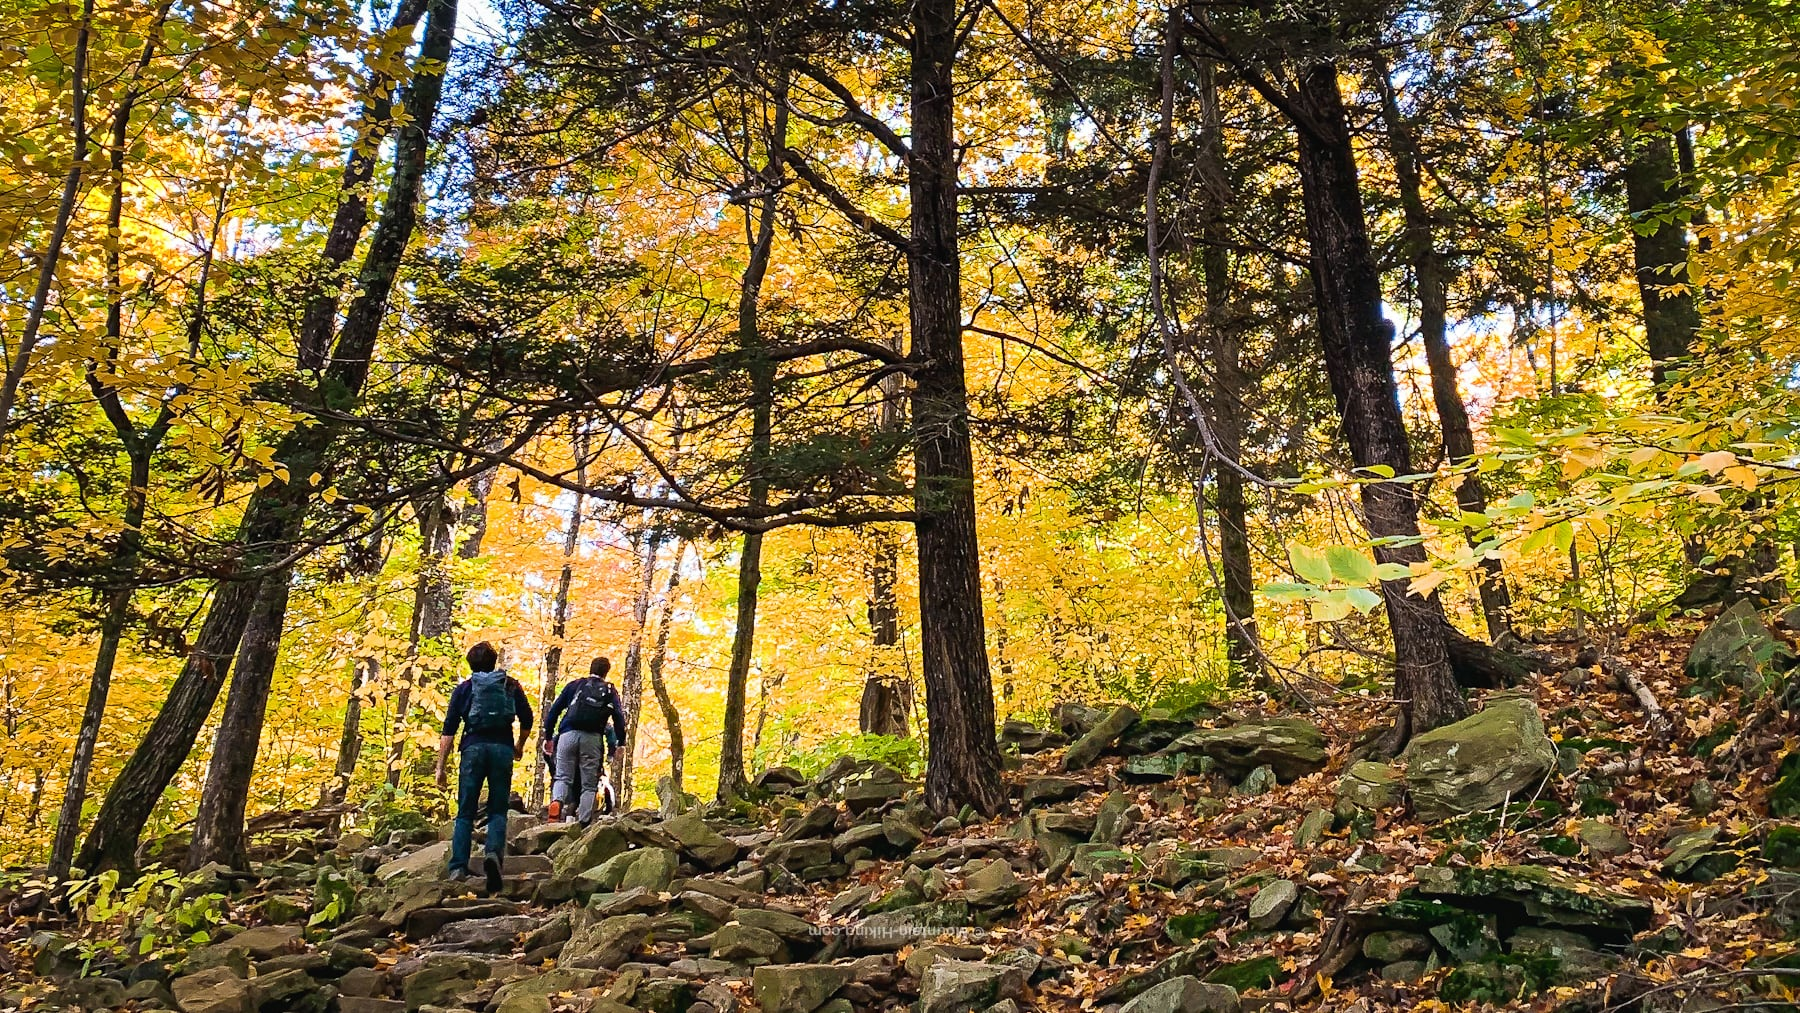 hikers climbing rugged trail in autumnal scene